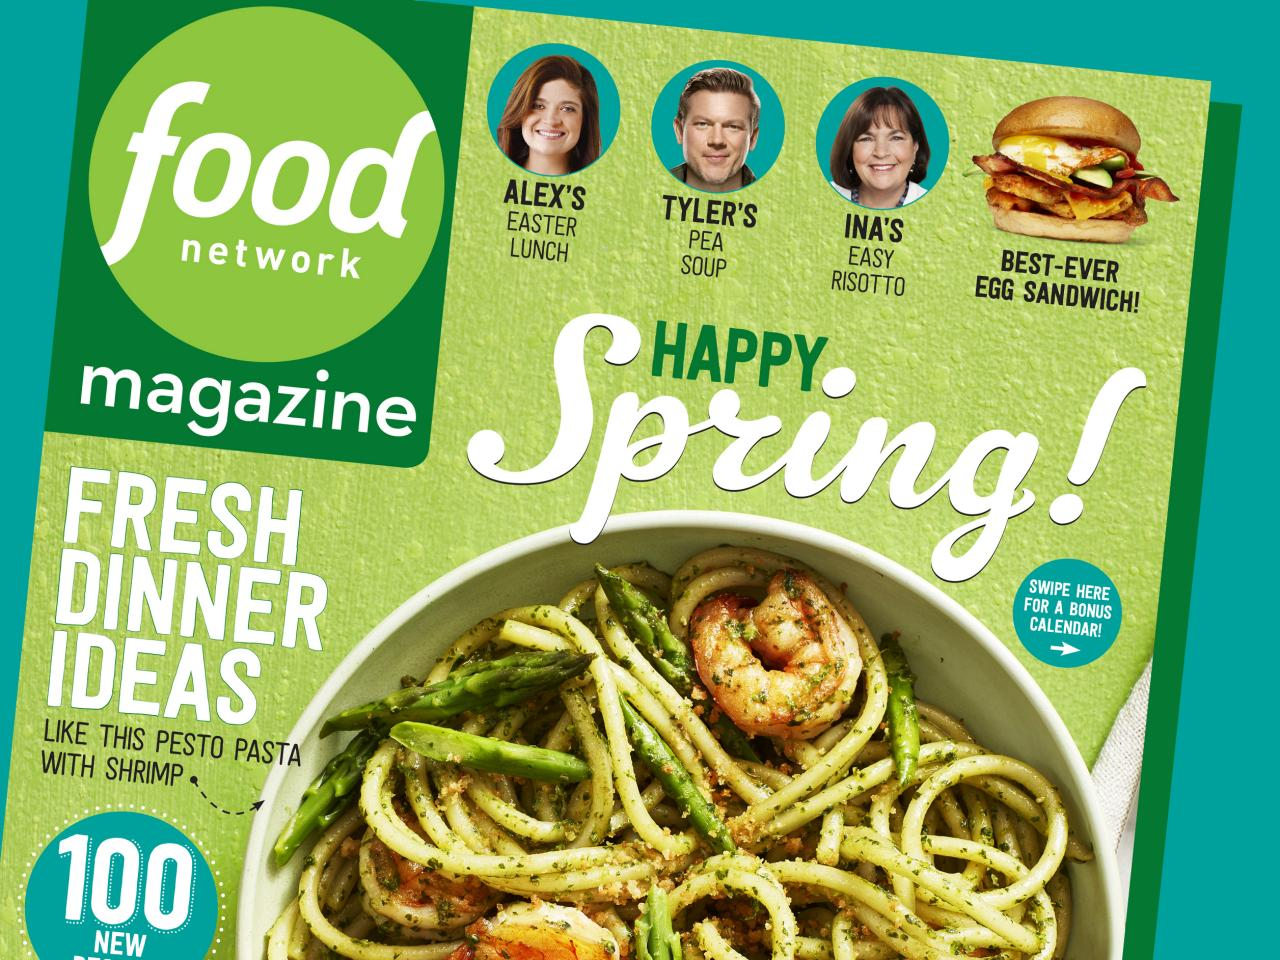 Food network magazine april 2016 recipe index food network food network magazine april 2016 recipe index forumfinder Images